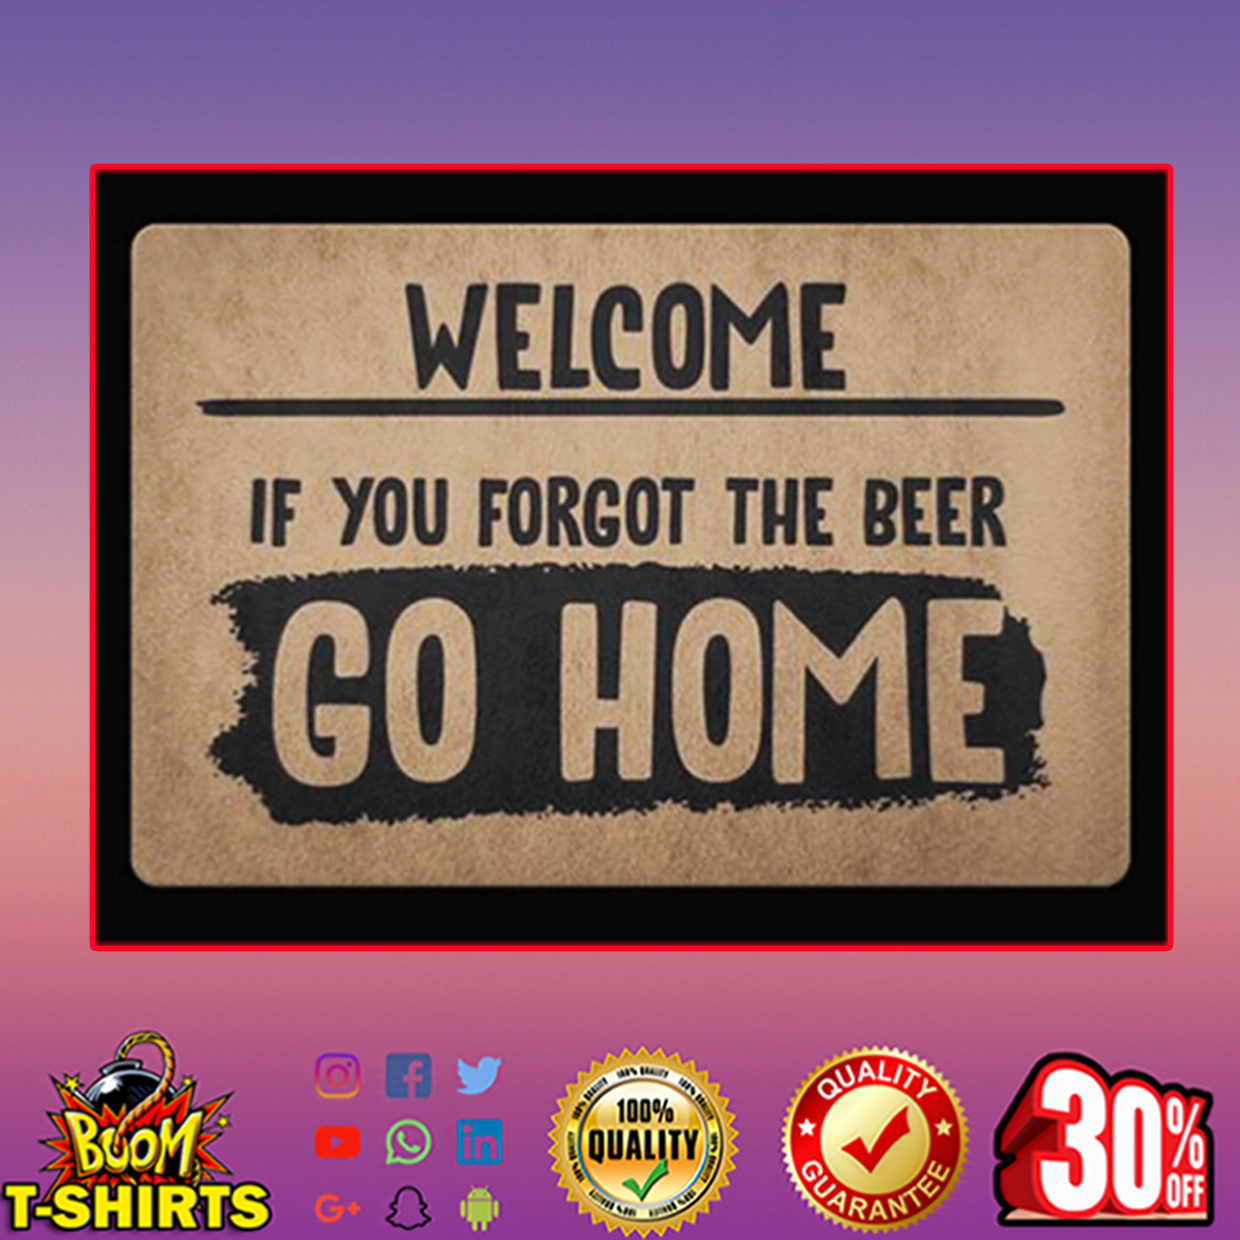 Welcome if you forgot the beer go home doormat - picture 1